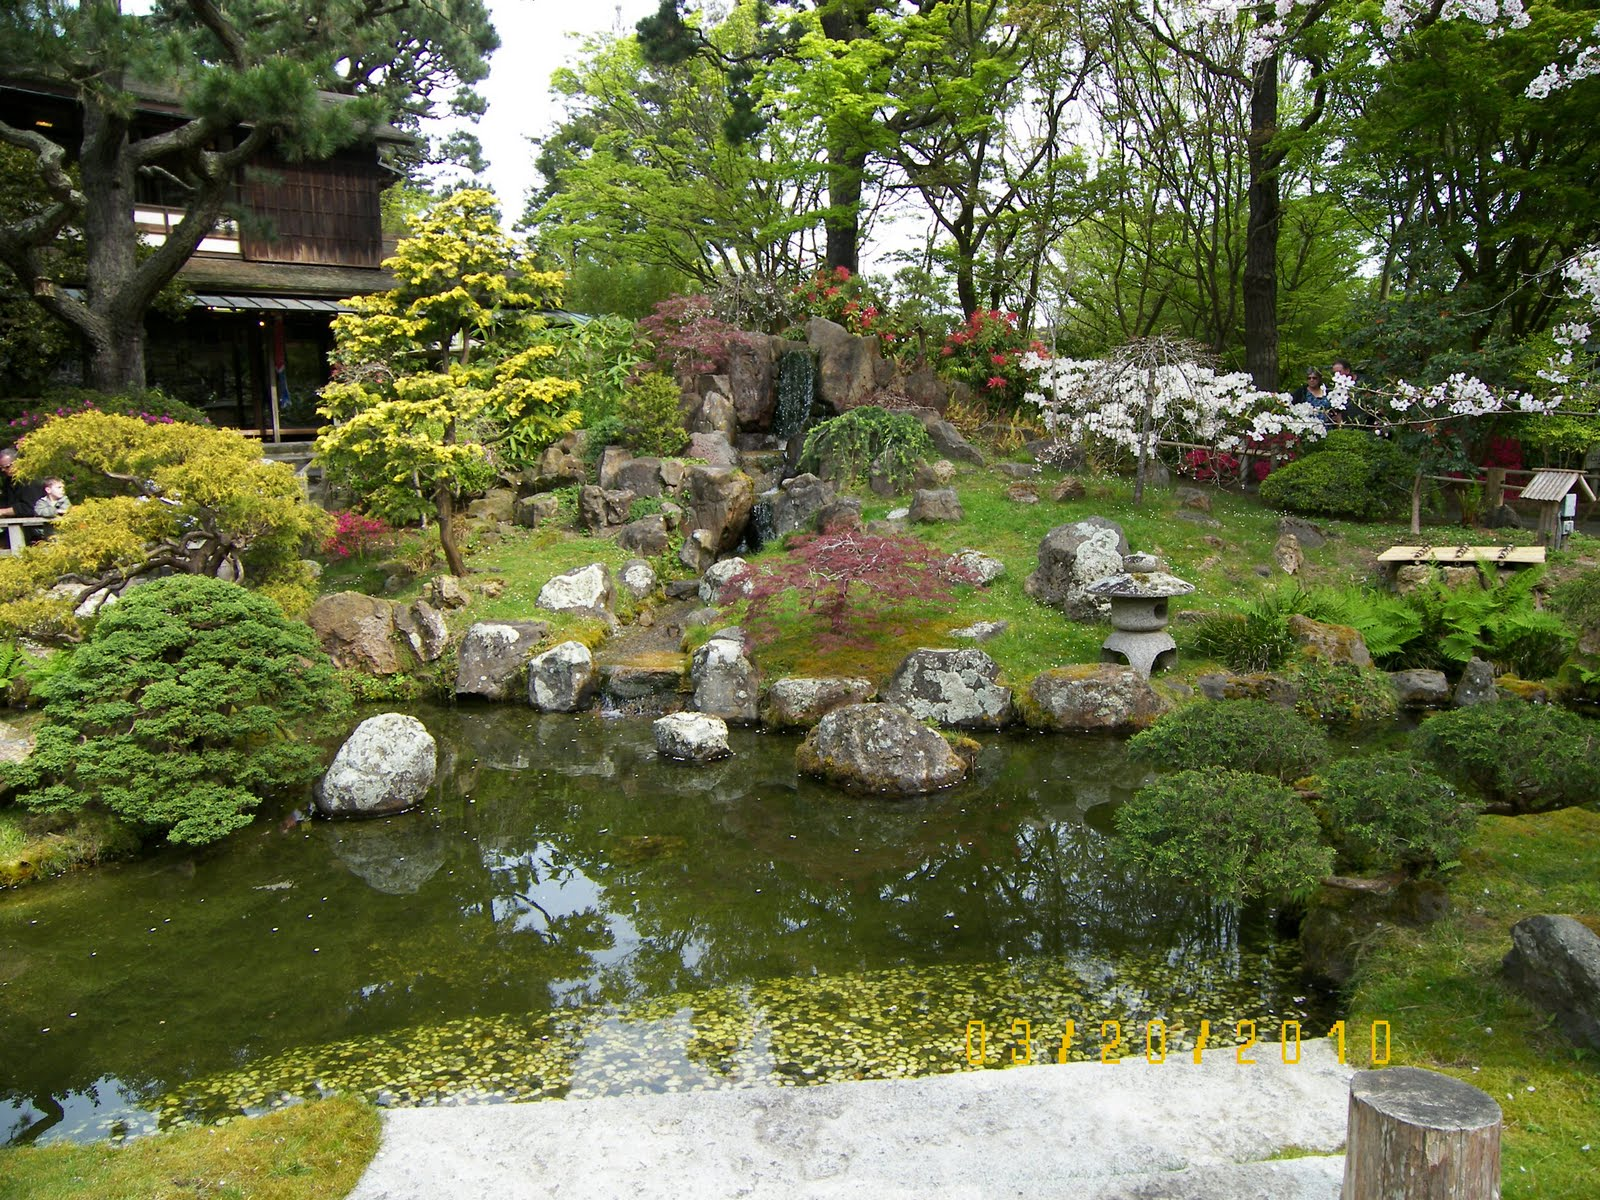 my Koi Pond 2010: visited SF Japanese Garden